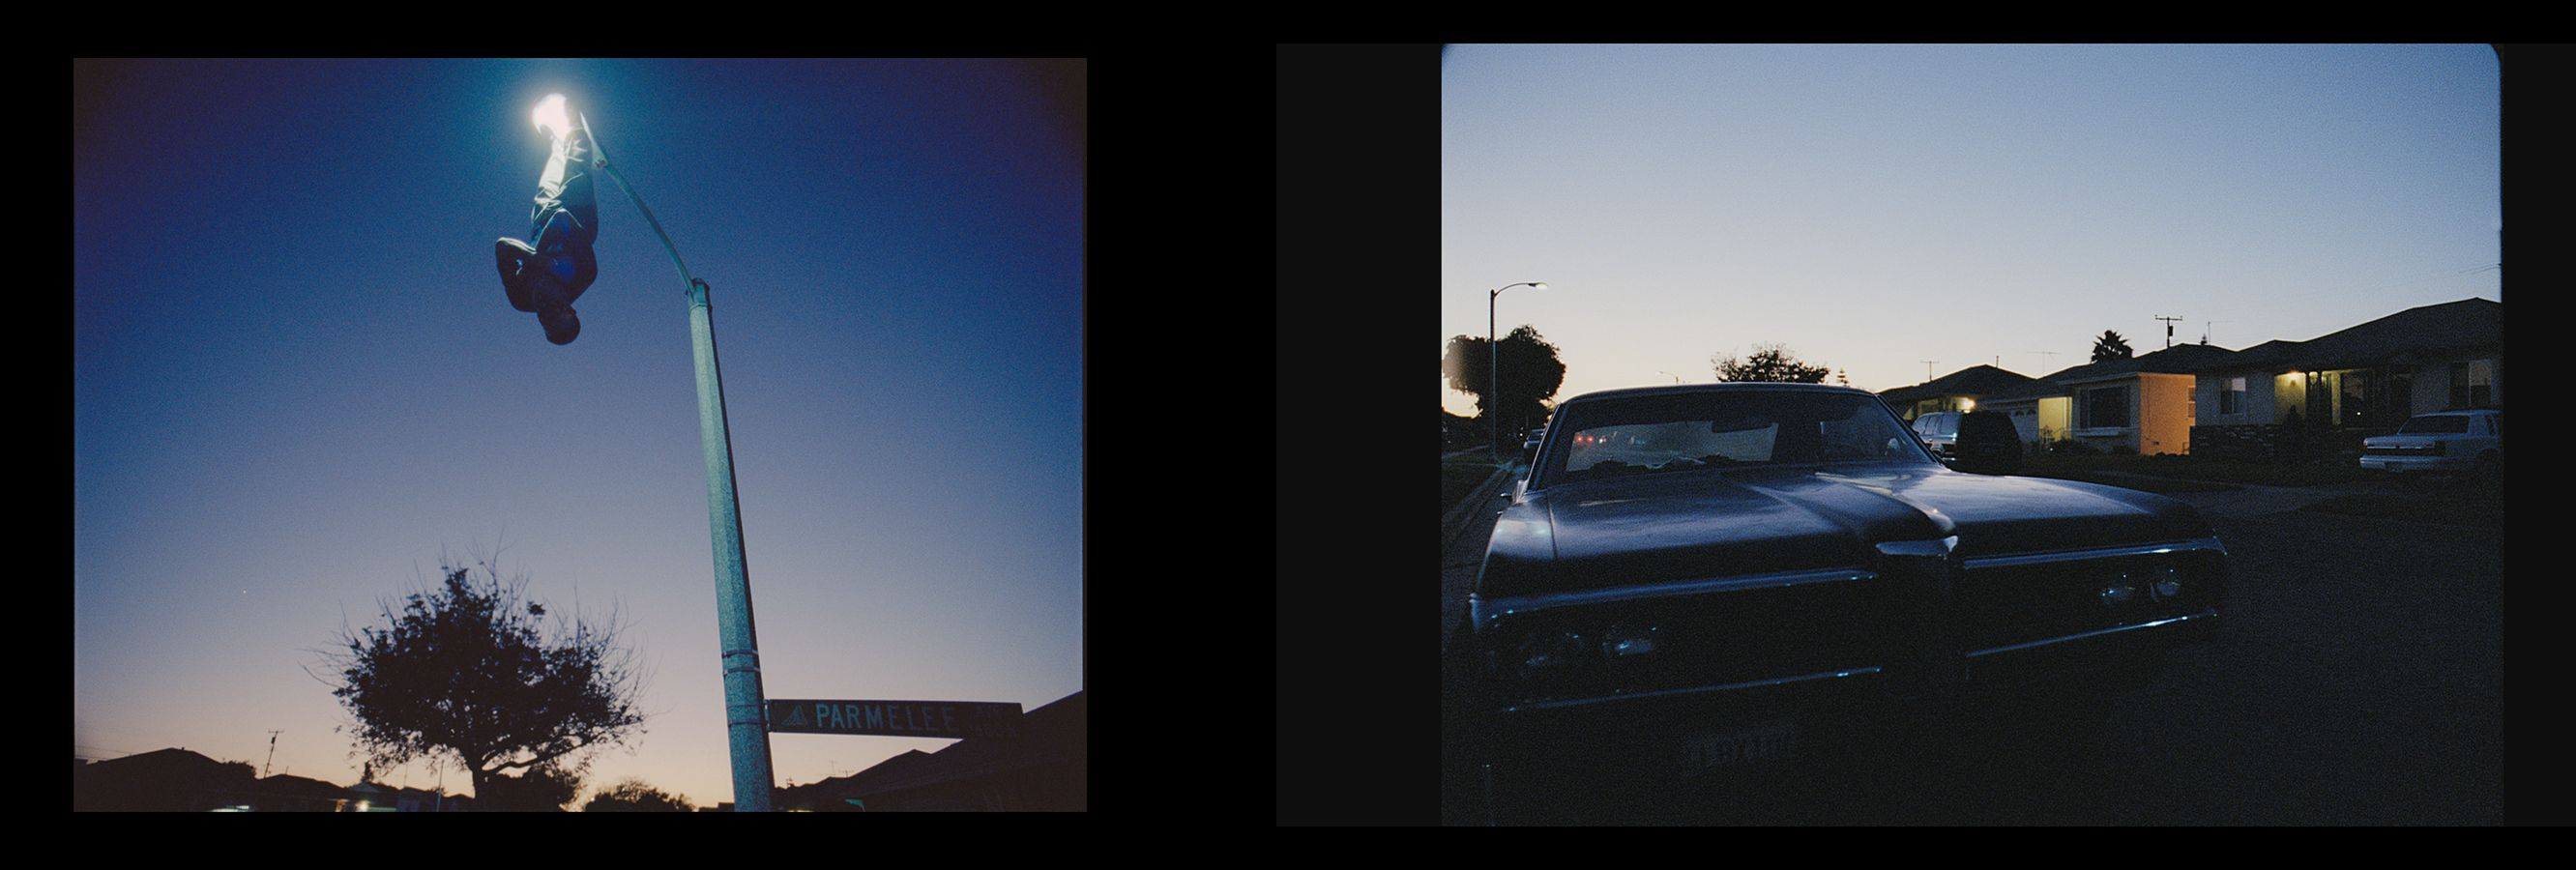 Kahlil Joseph S M A A D Gives New Visual Life To Kendrick Lamar S